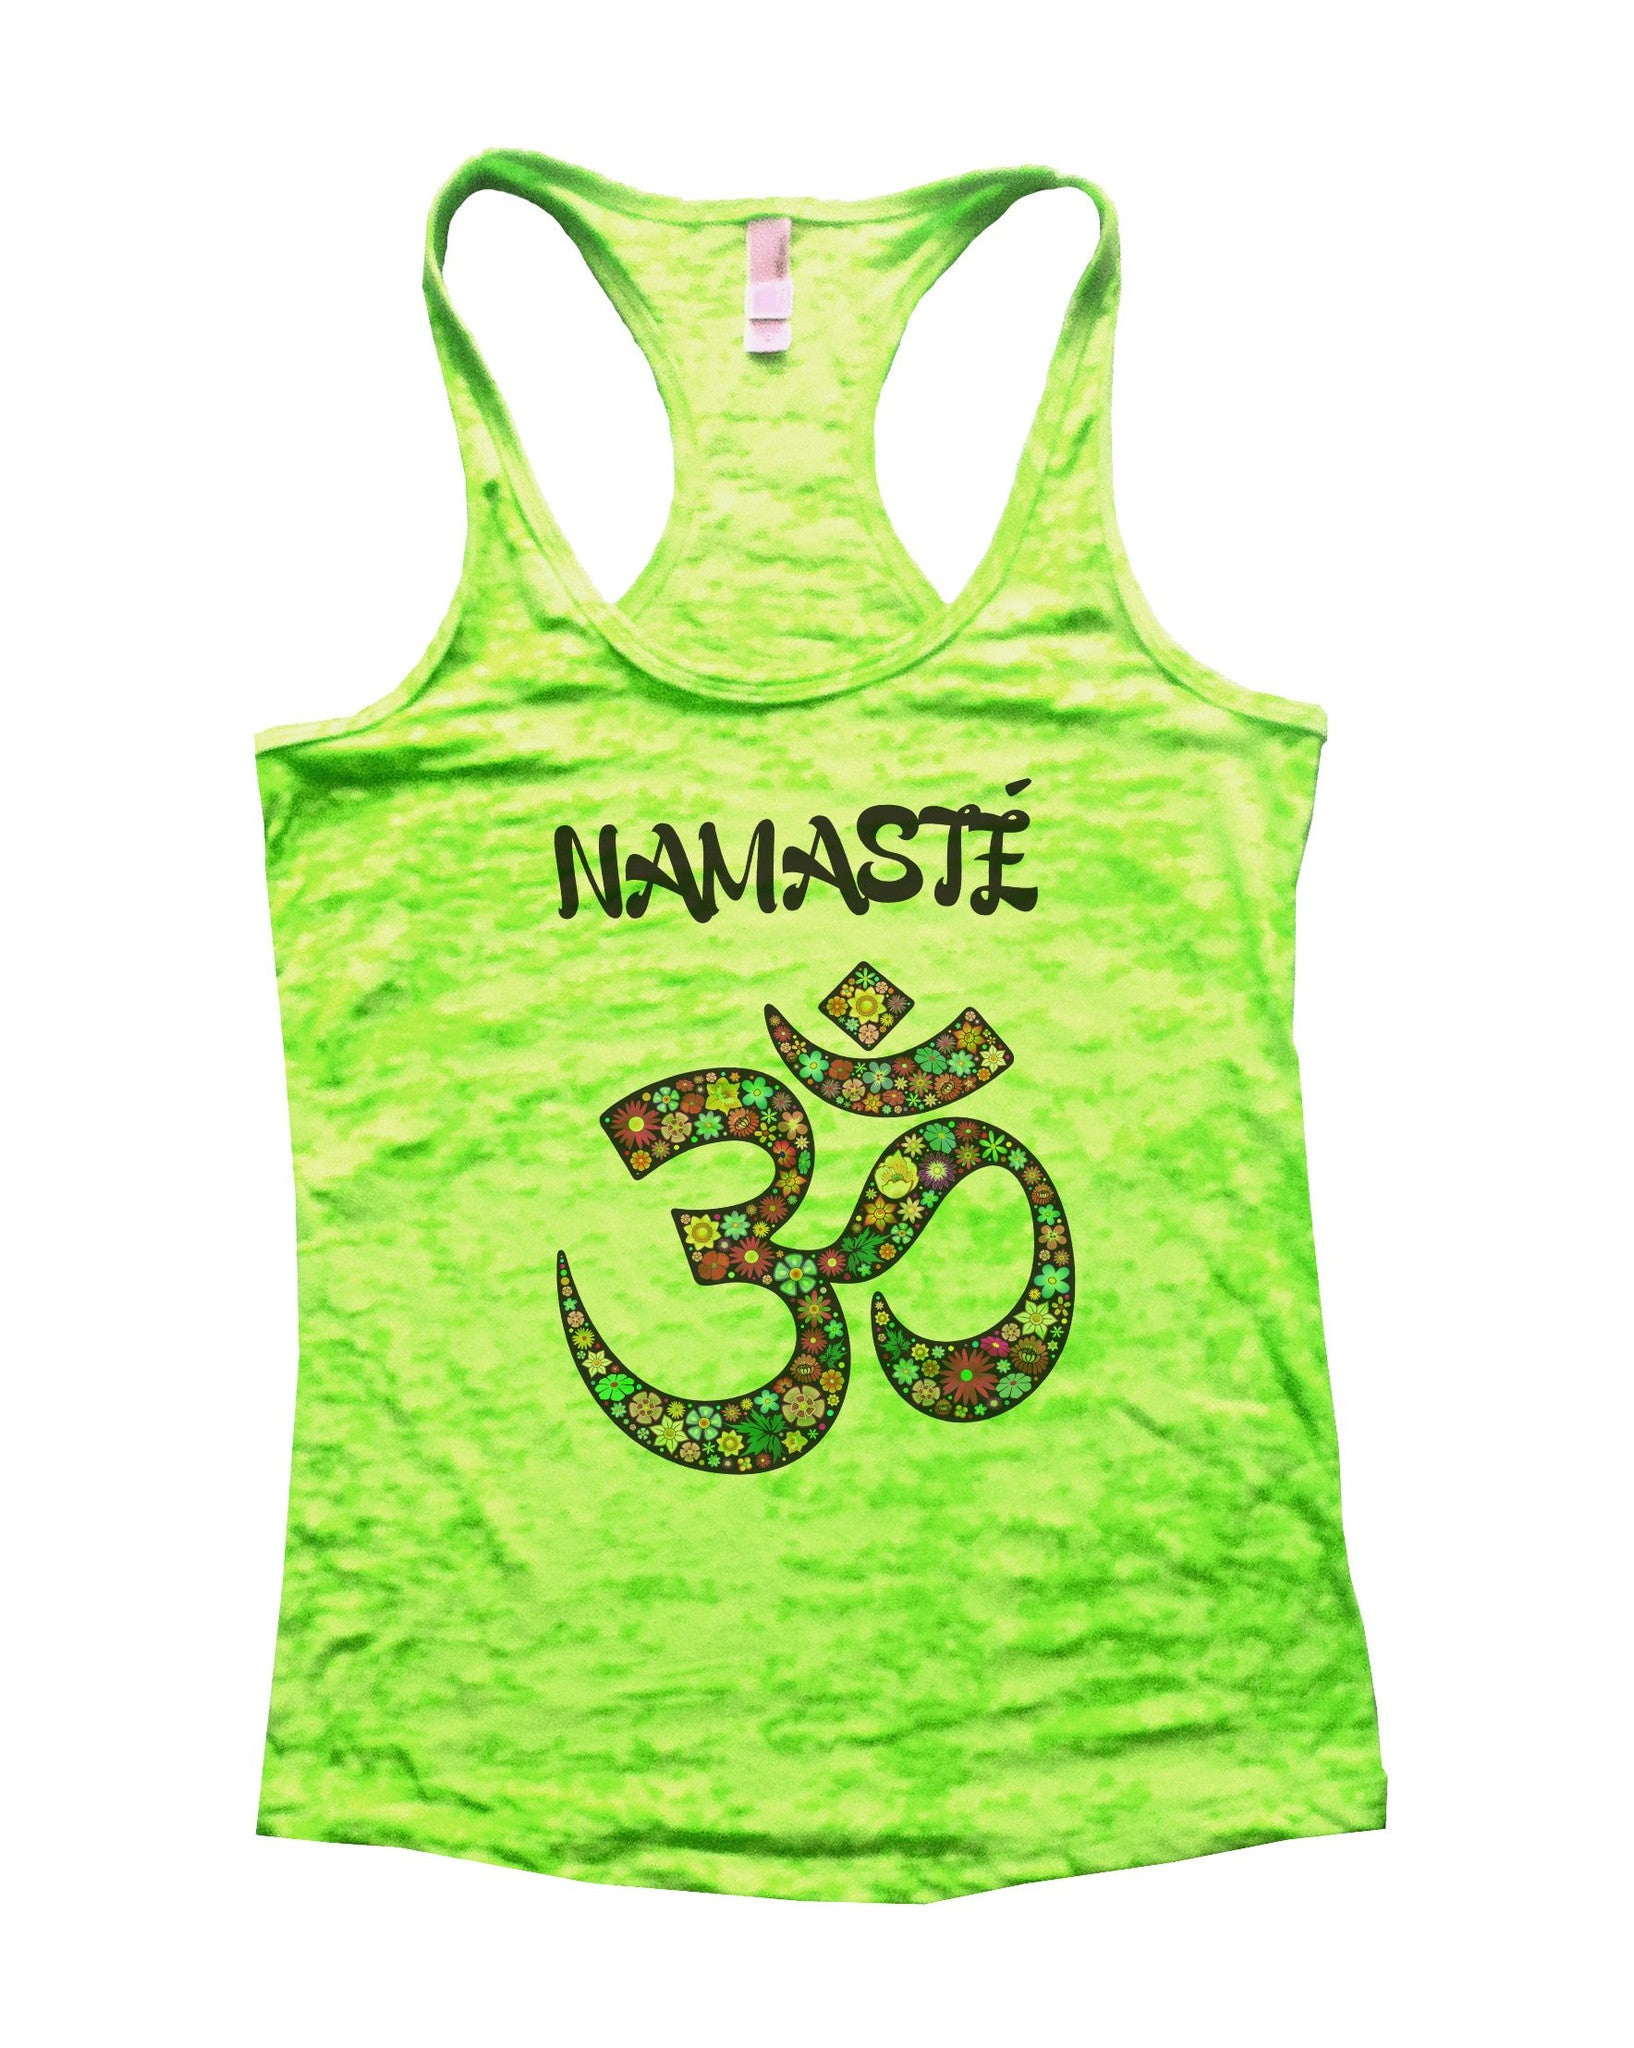 Namaste Burnout Tank Top By BurnoutTankTops.com - 713 - Funny Shirts Tank Tops Burnouts and Triblends  - 3